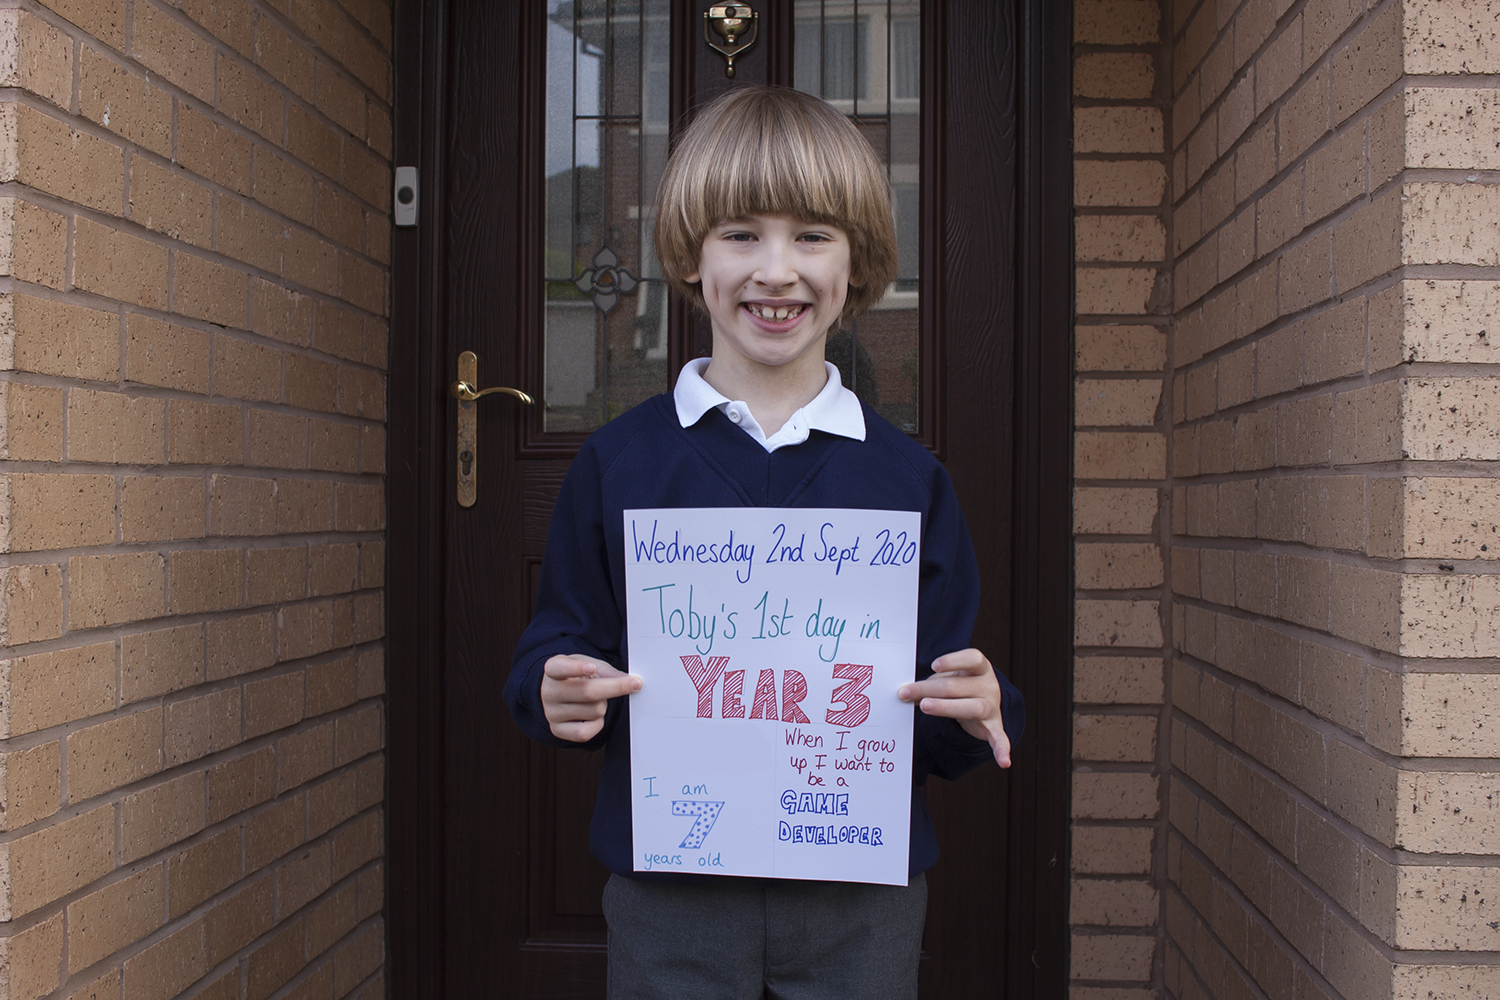 Toby on his first day in Year 3